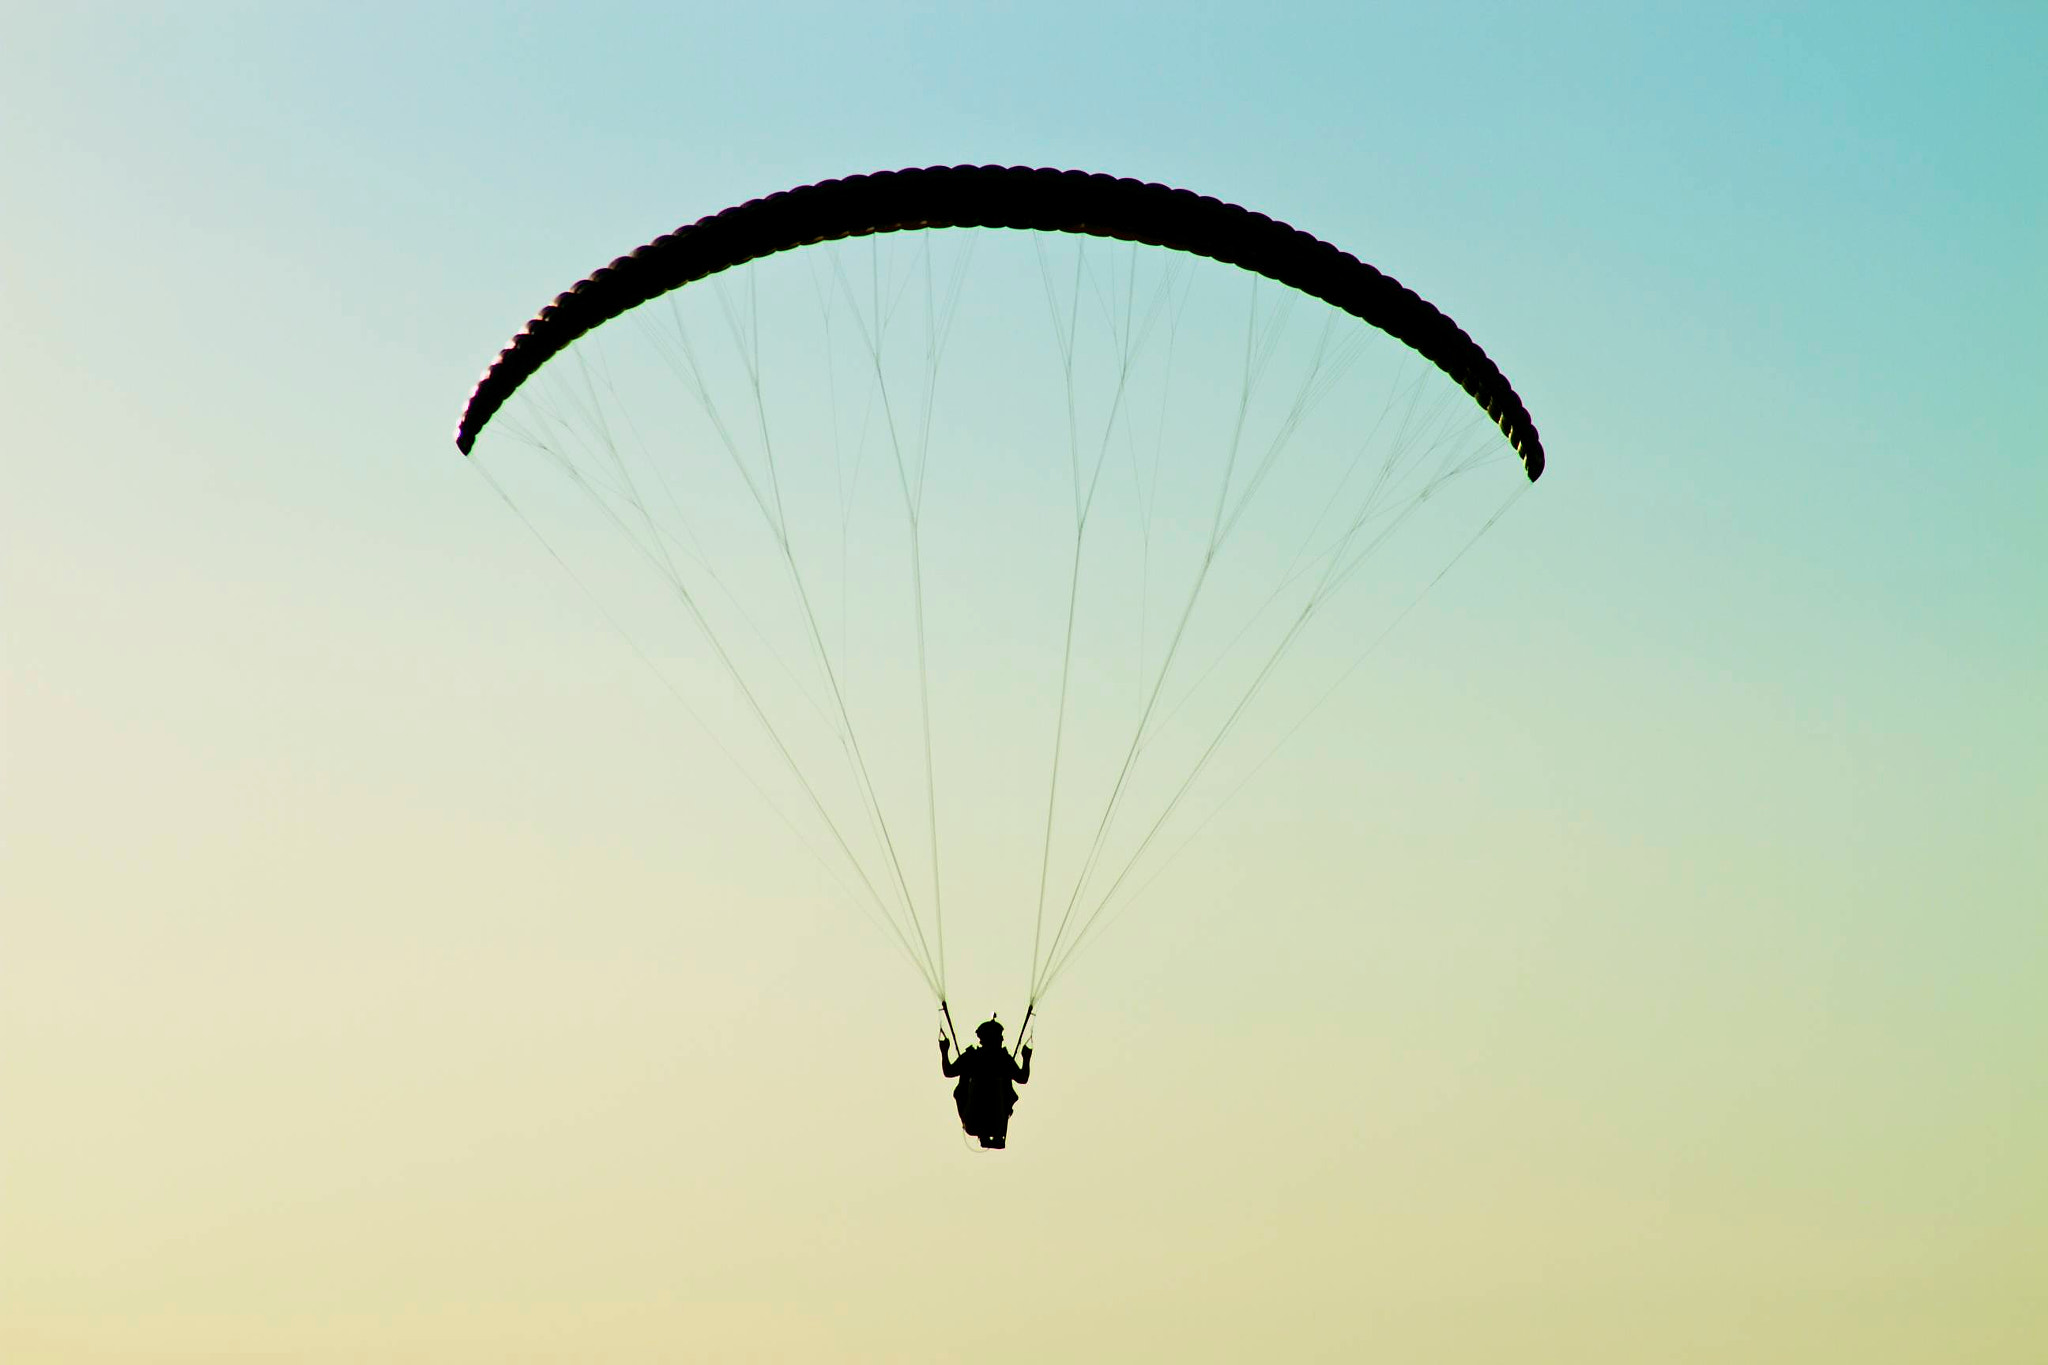 Photograph Paraglider by Rob Sentz on 500px